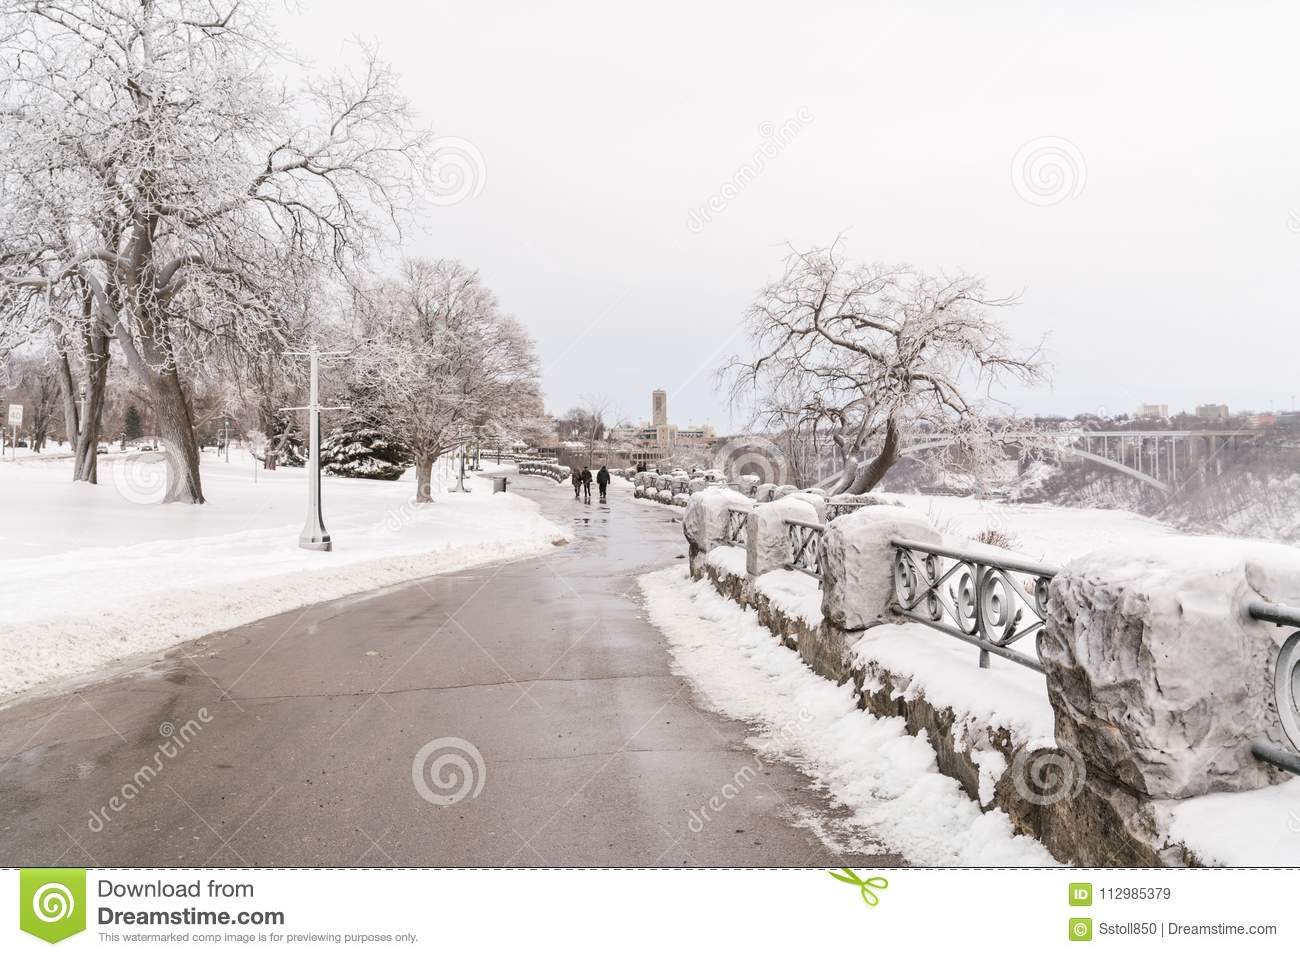 Niagara Falls, Canada, in winter with snow and ice